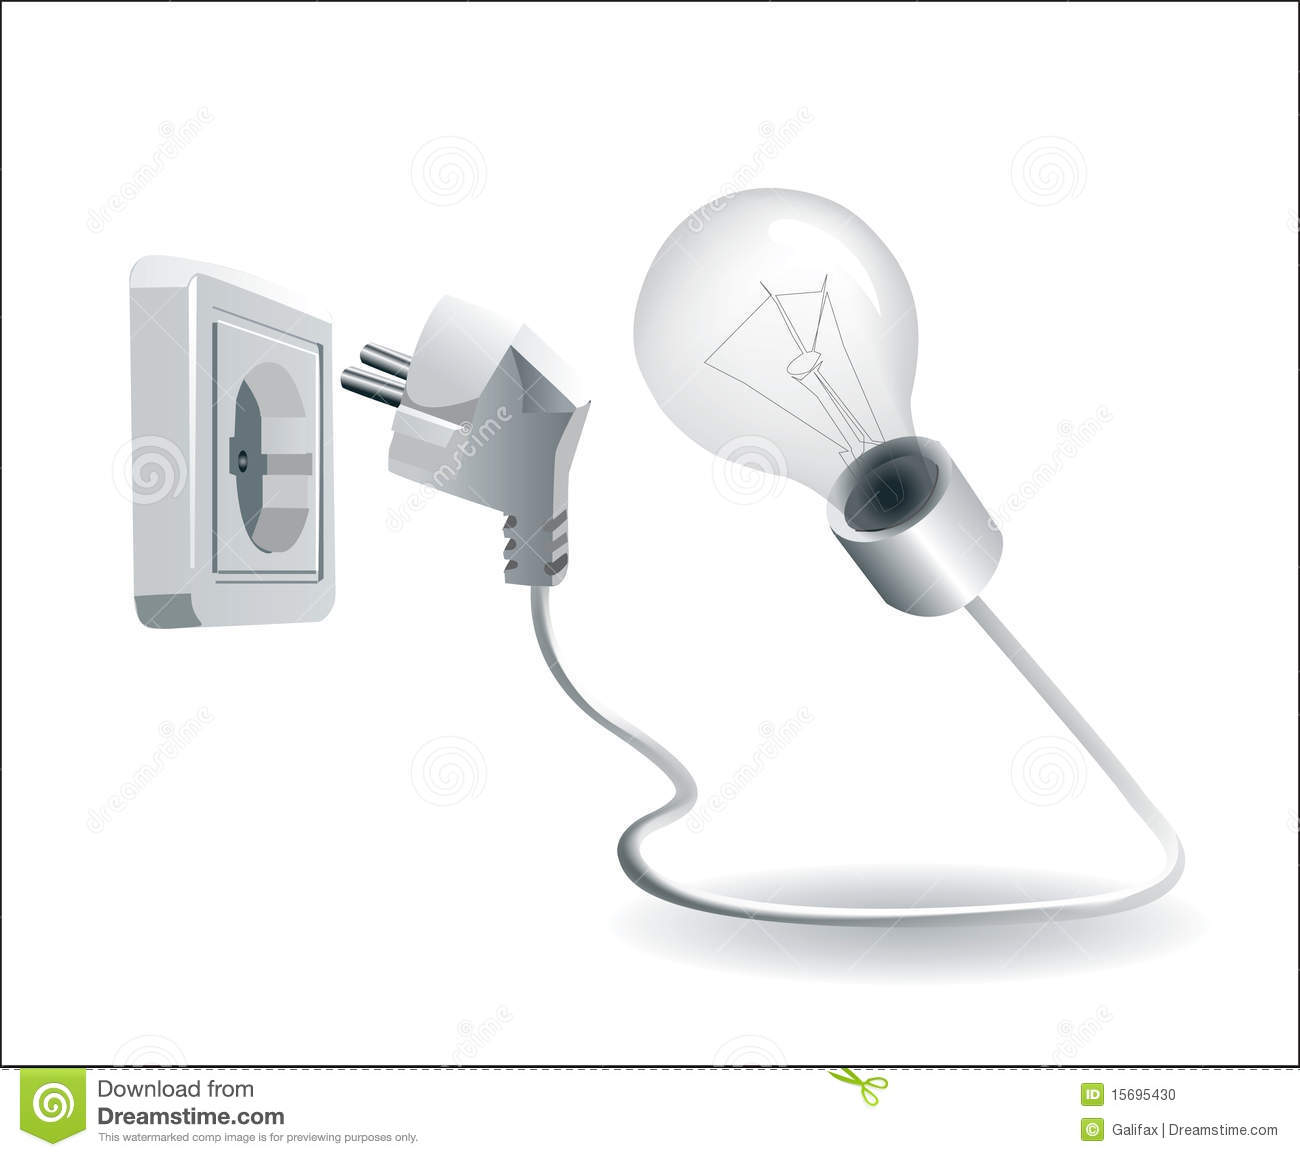 Lamp And Electric Plug And Socket Stock Vector - Image ...